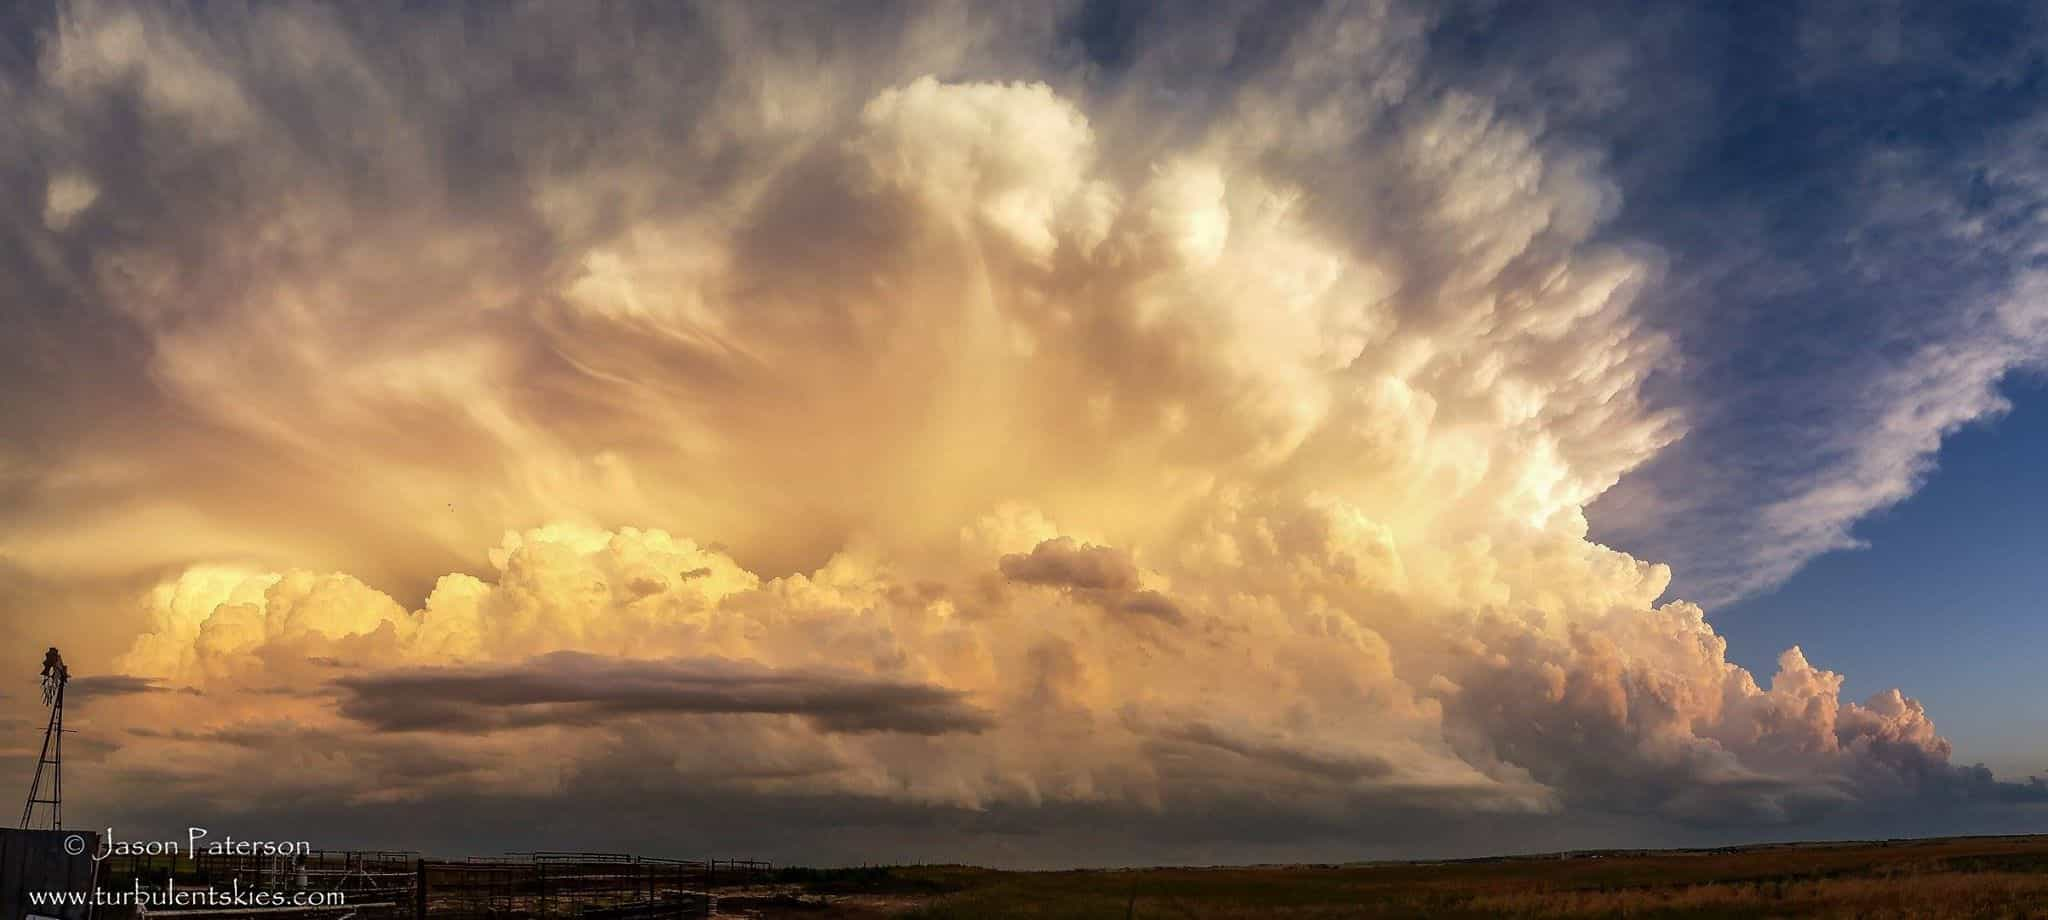 May 26th 2015 Northern Oklahoma. This is what happens when 3500j/kg of CAPE is realised! These spectacular boiling updrafts illuminated by the setting sun are part of a larger complex that had a tornado warning on its eastern end. No need for timelapse here, you could see the updrafts erupting into the atmosphere in real time....truly a memorable sight!